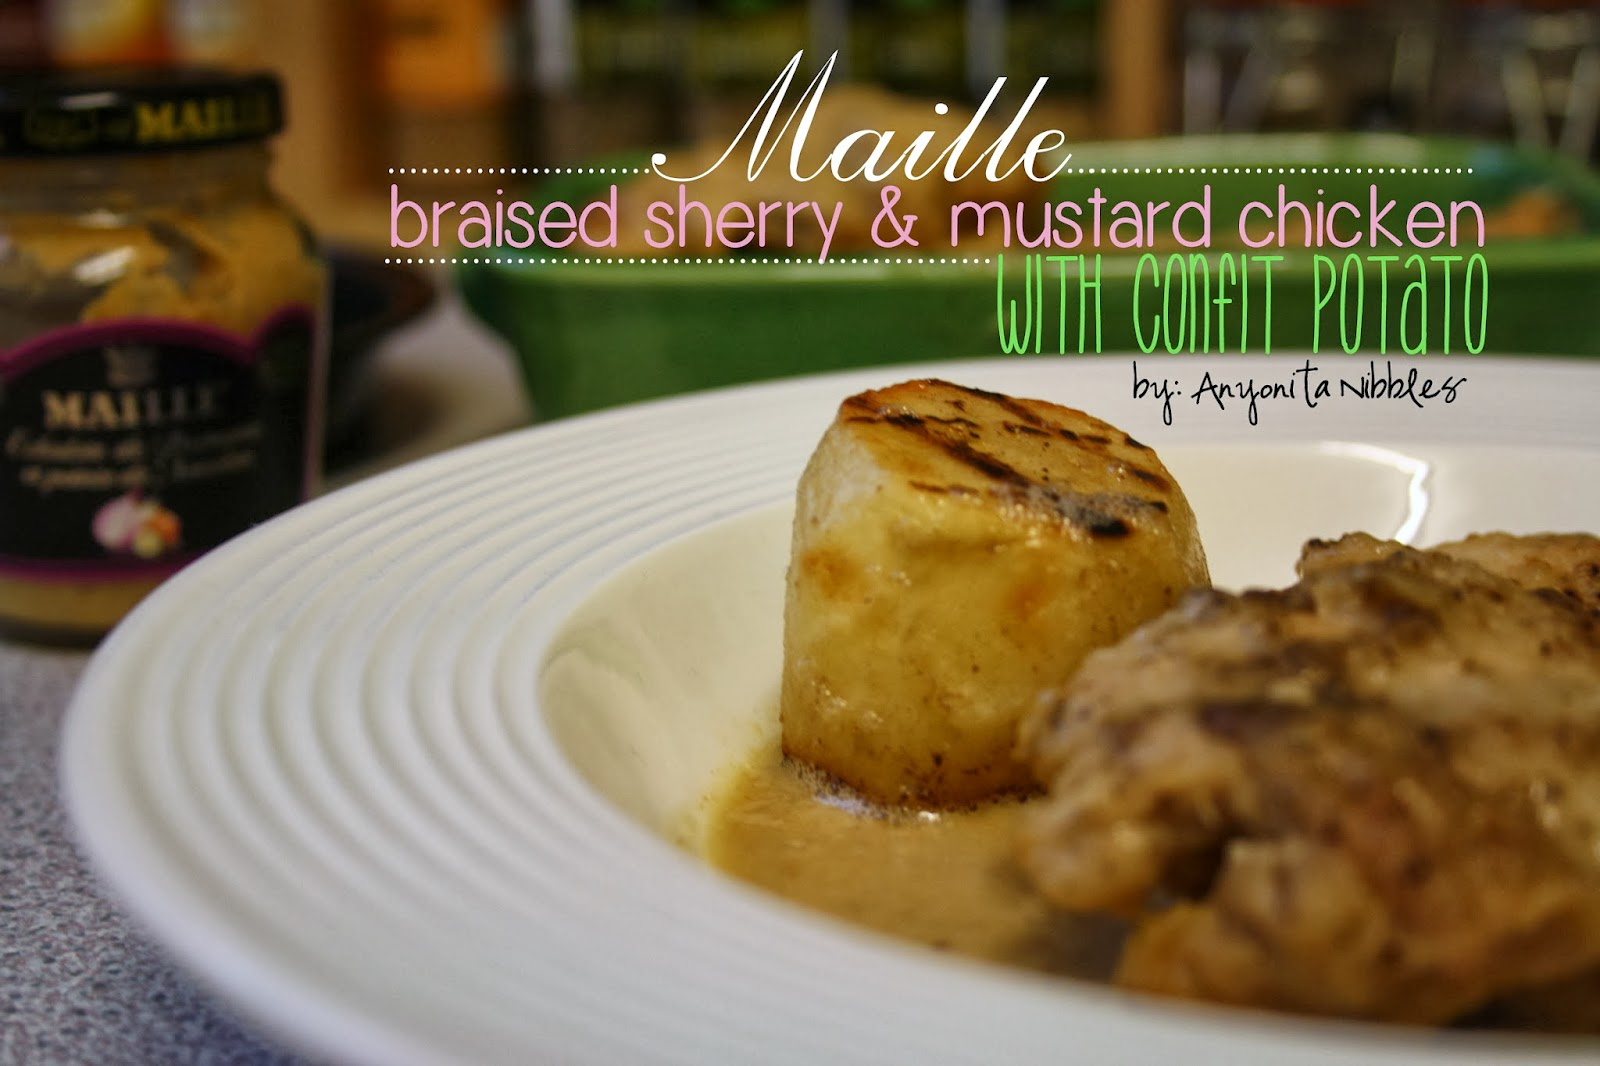 ... : Maille's Sherry & Mustard Braised Chicken with Confit Potato Re...